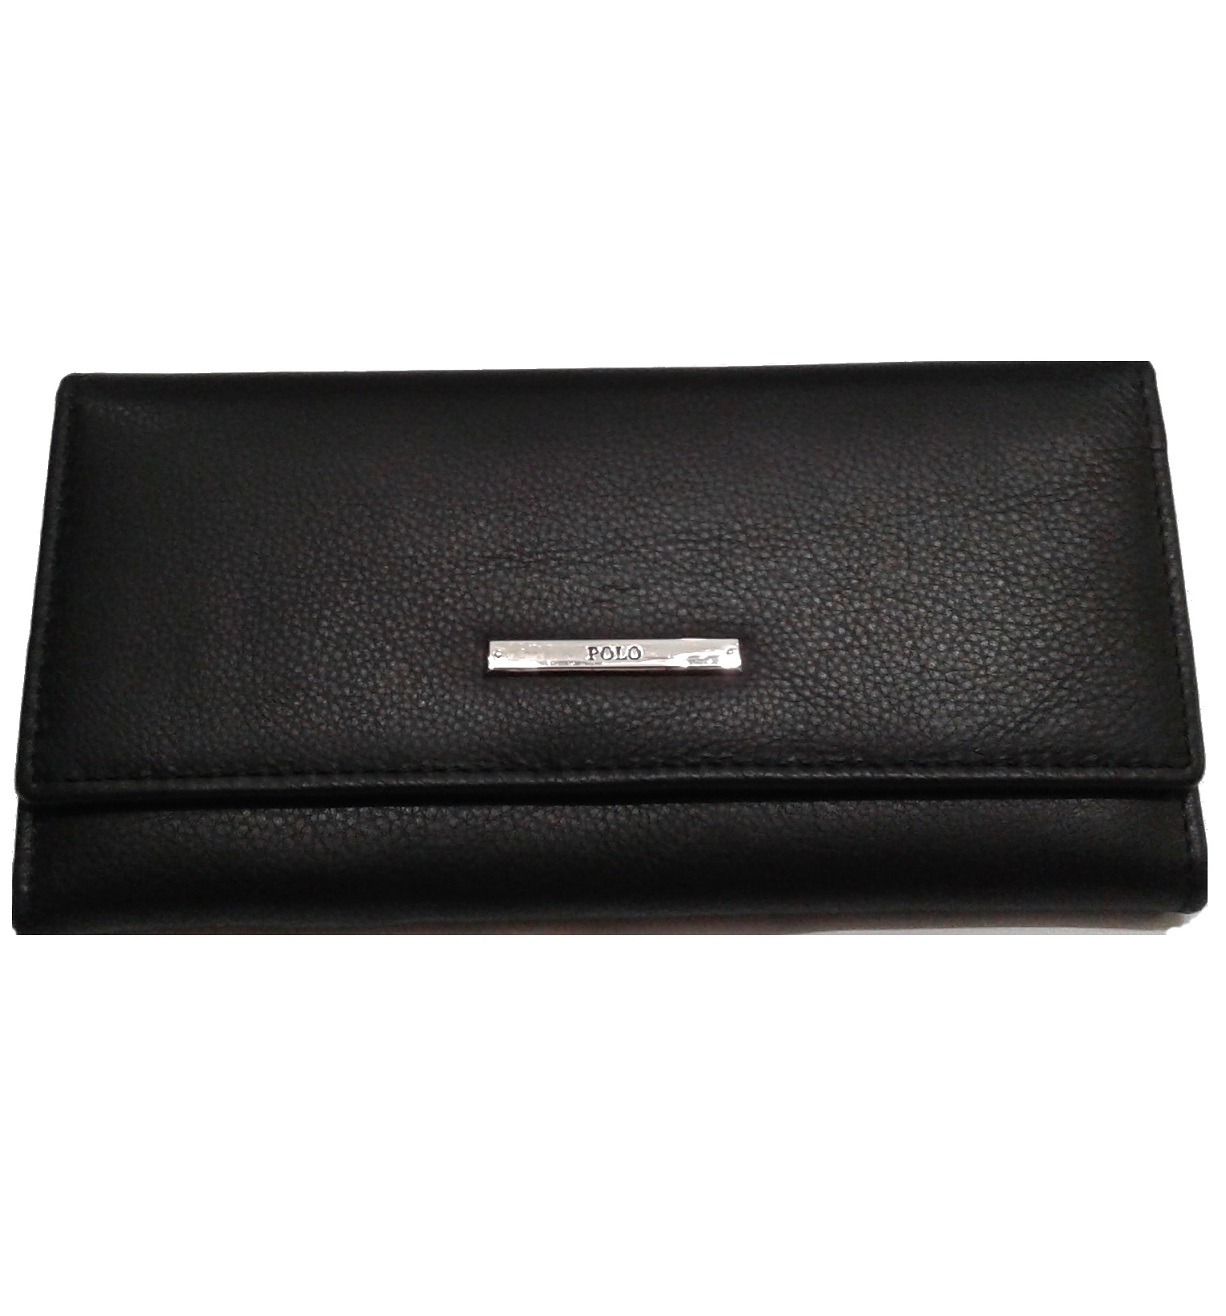 Ladies' Polo Nappa Leather Wallet